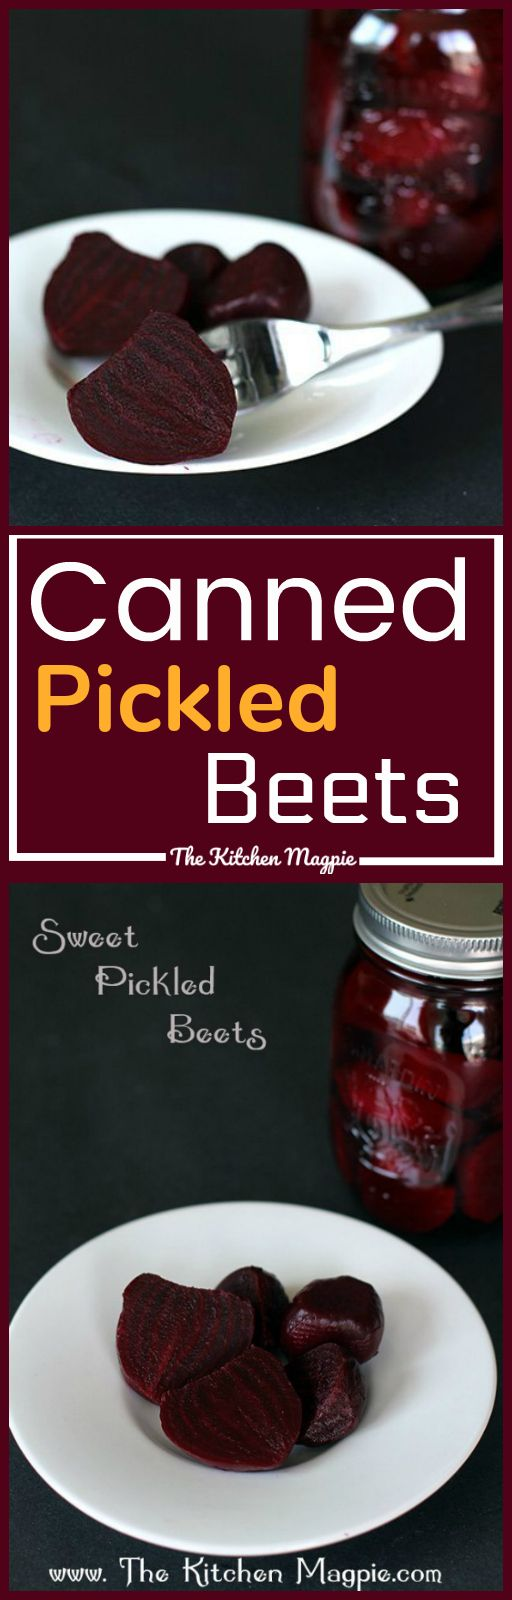 How to Make Canned Pickled Beets & Recipe! It's easier than you think to make these delicious pickled beets at home! Recipe from @kitchenmagpie.  #Canning #pickles #preserving #beets